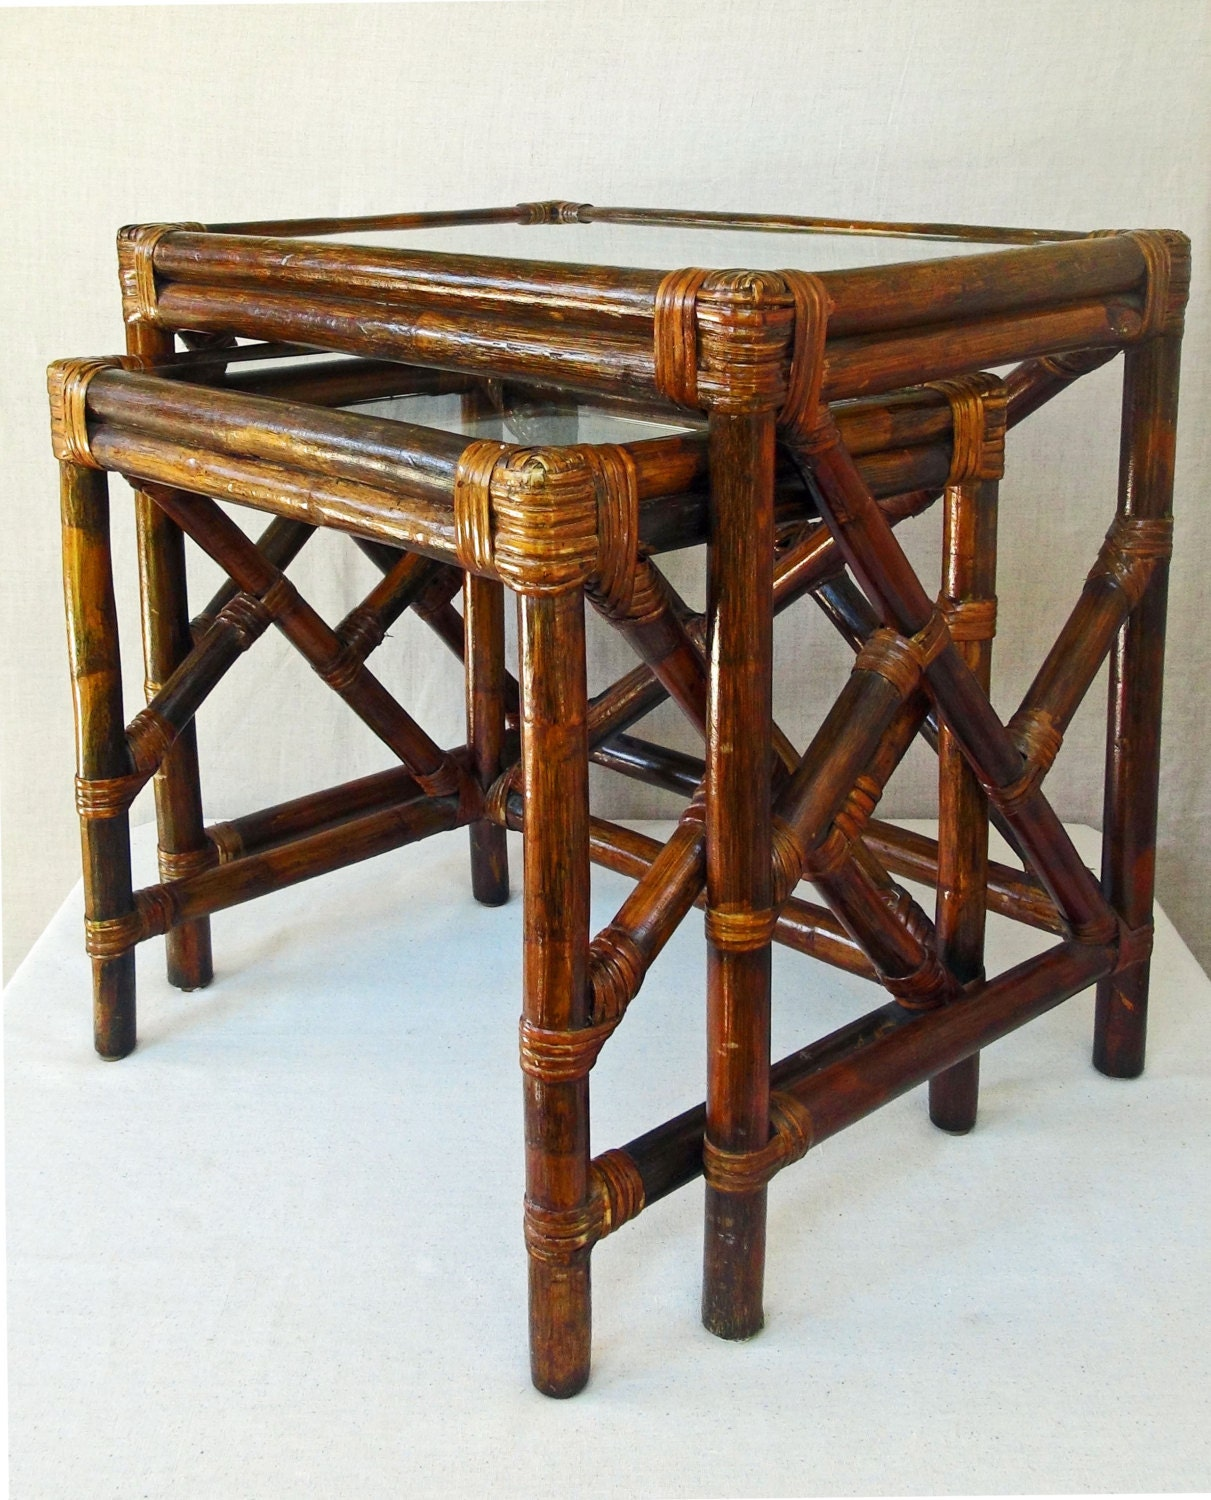 Rattan Nesting Tables ~ Vintage bamboo rattan and glass nesting tables end table